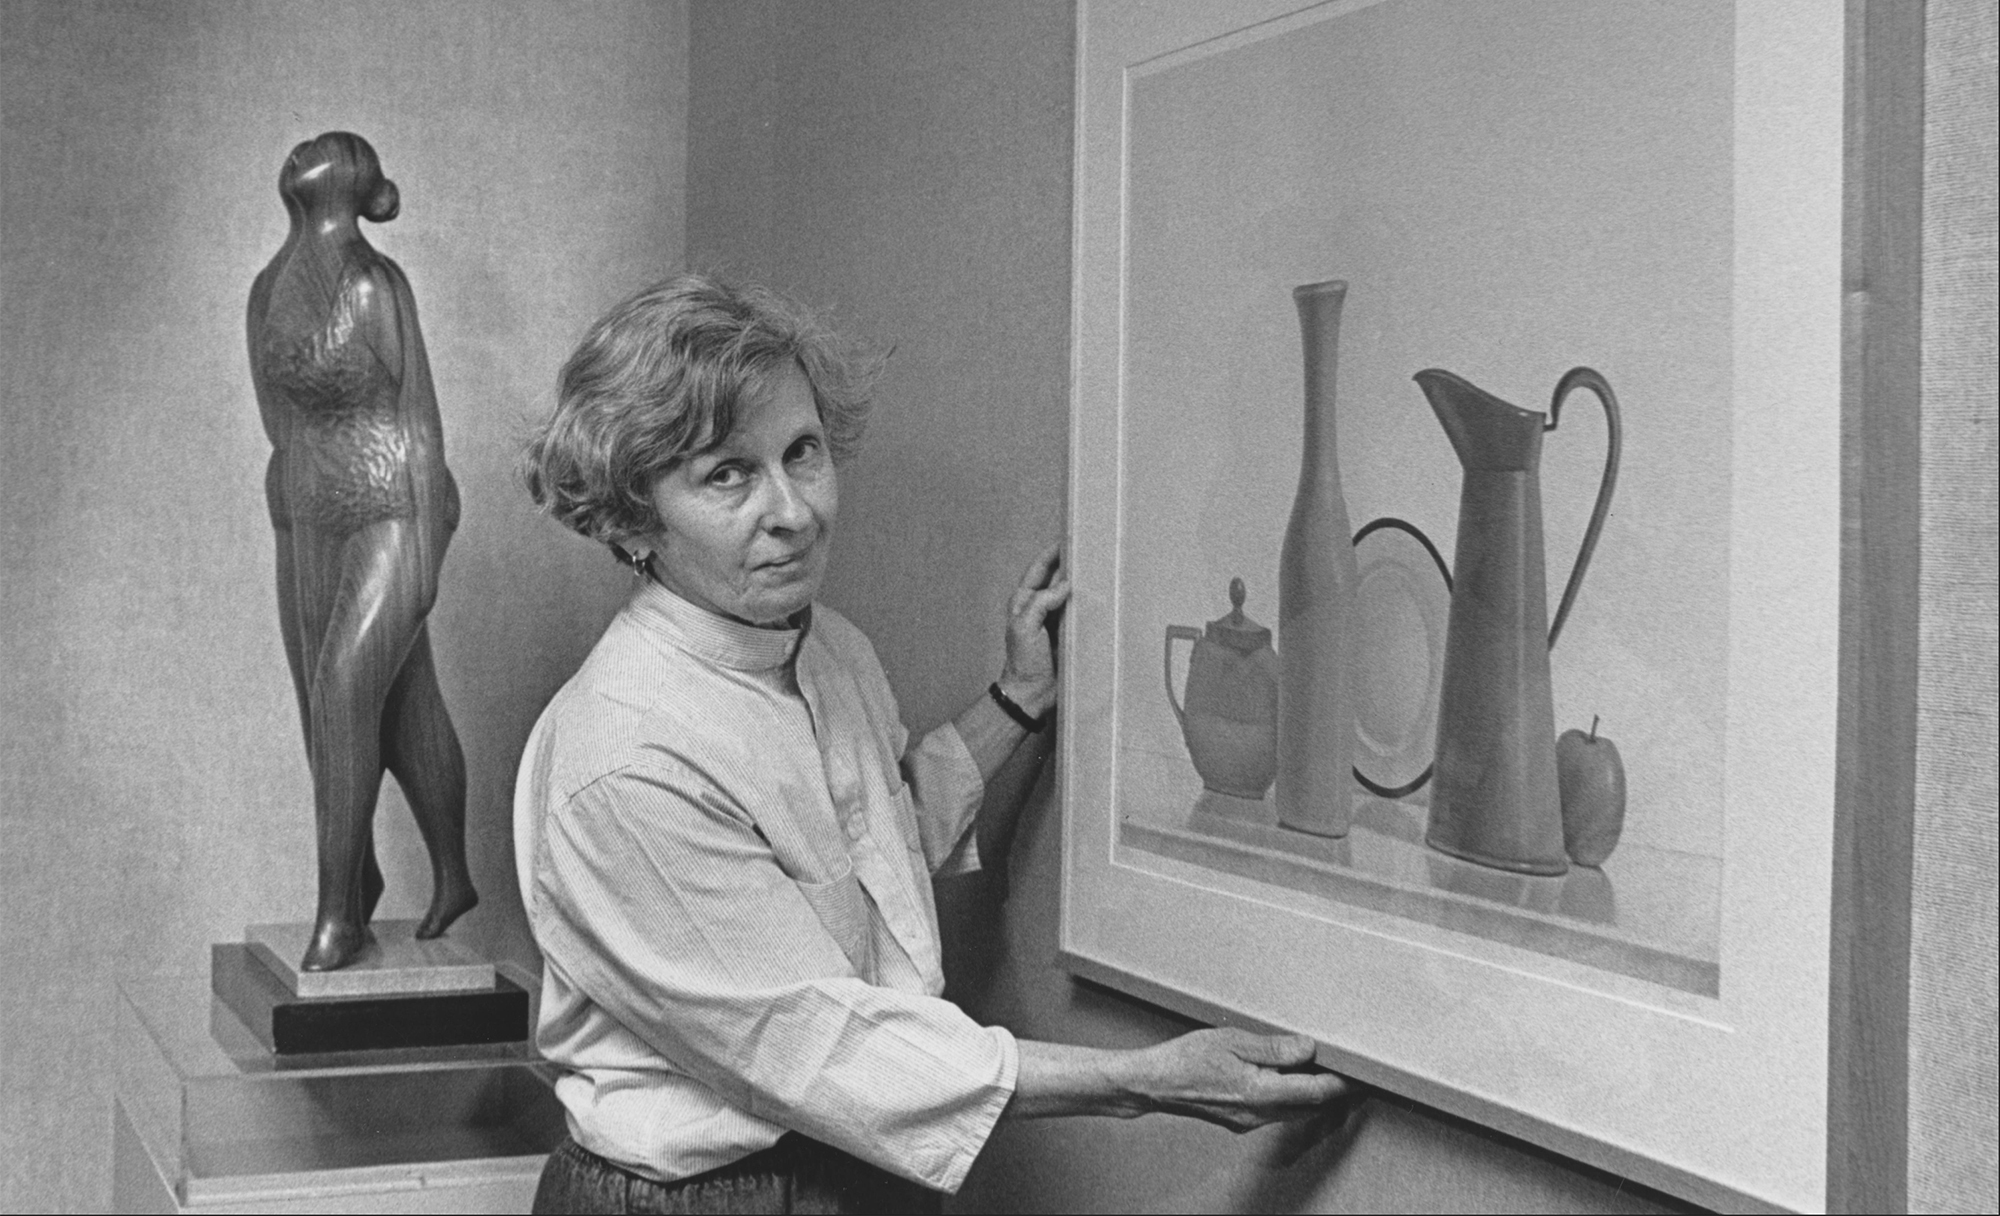 Keyser hangs her twin sister's painting for their 1988 exhibit at Tyler School of Art. Keyser's wood sculpture is seen in the background.